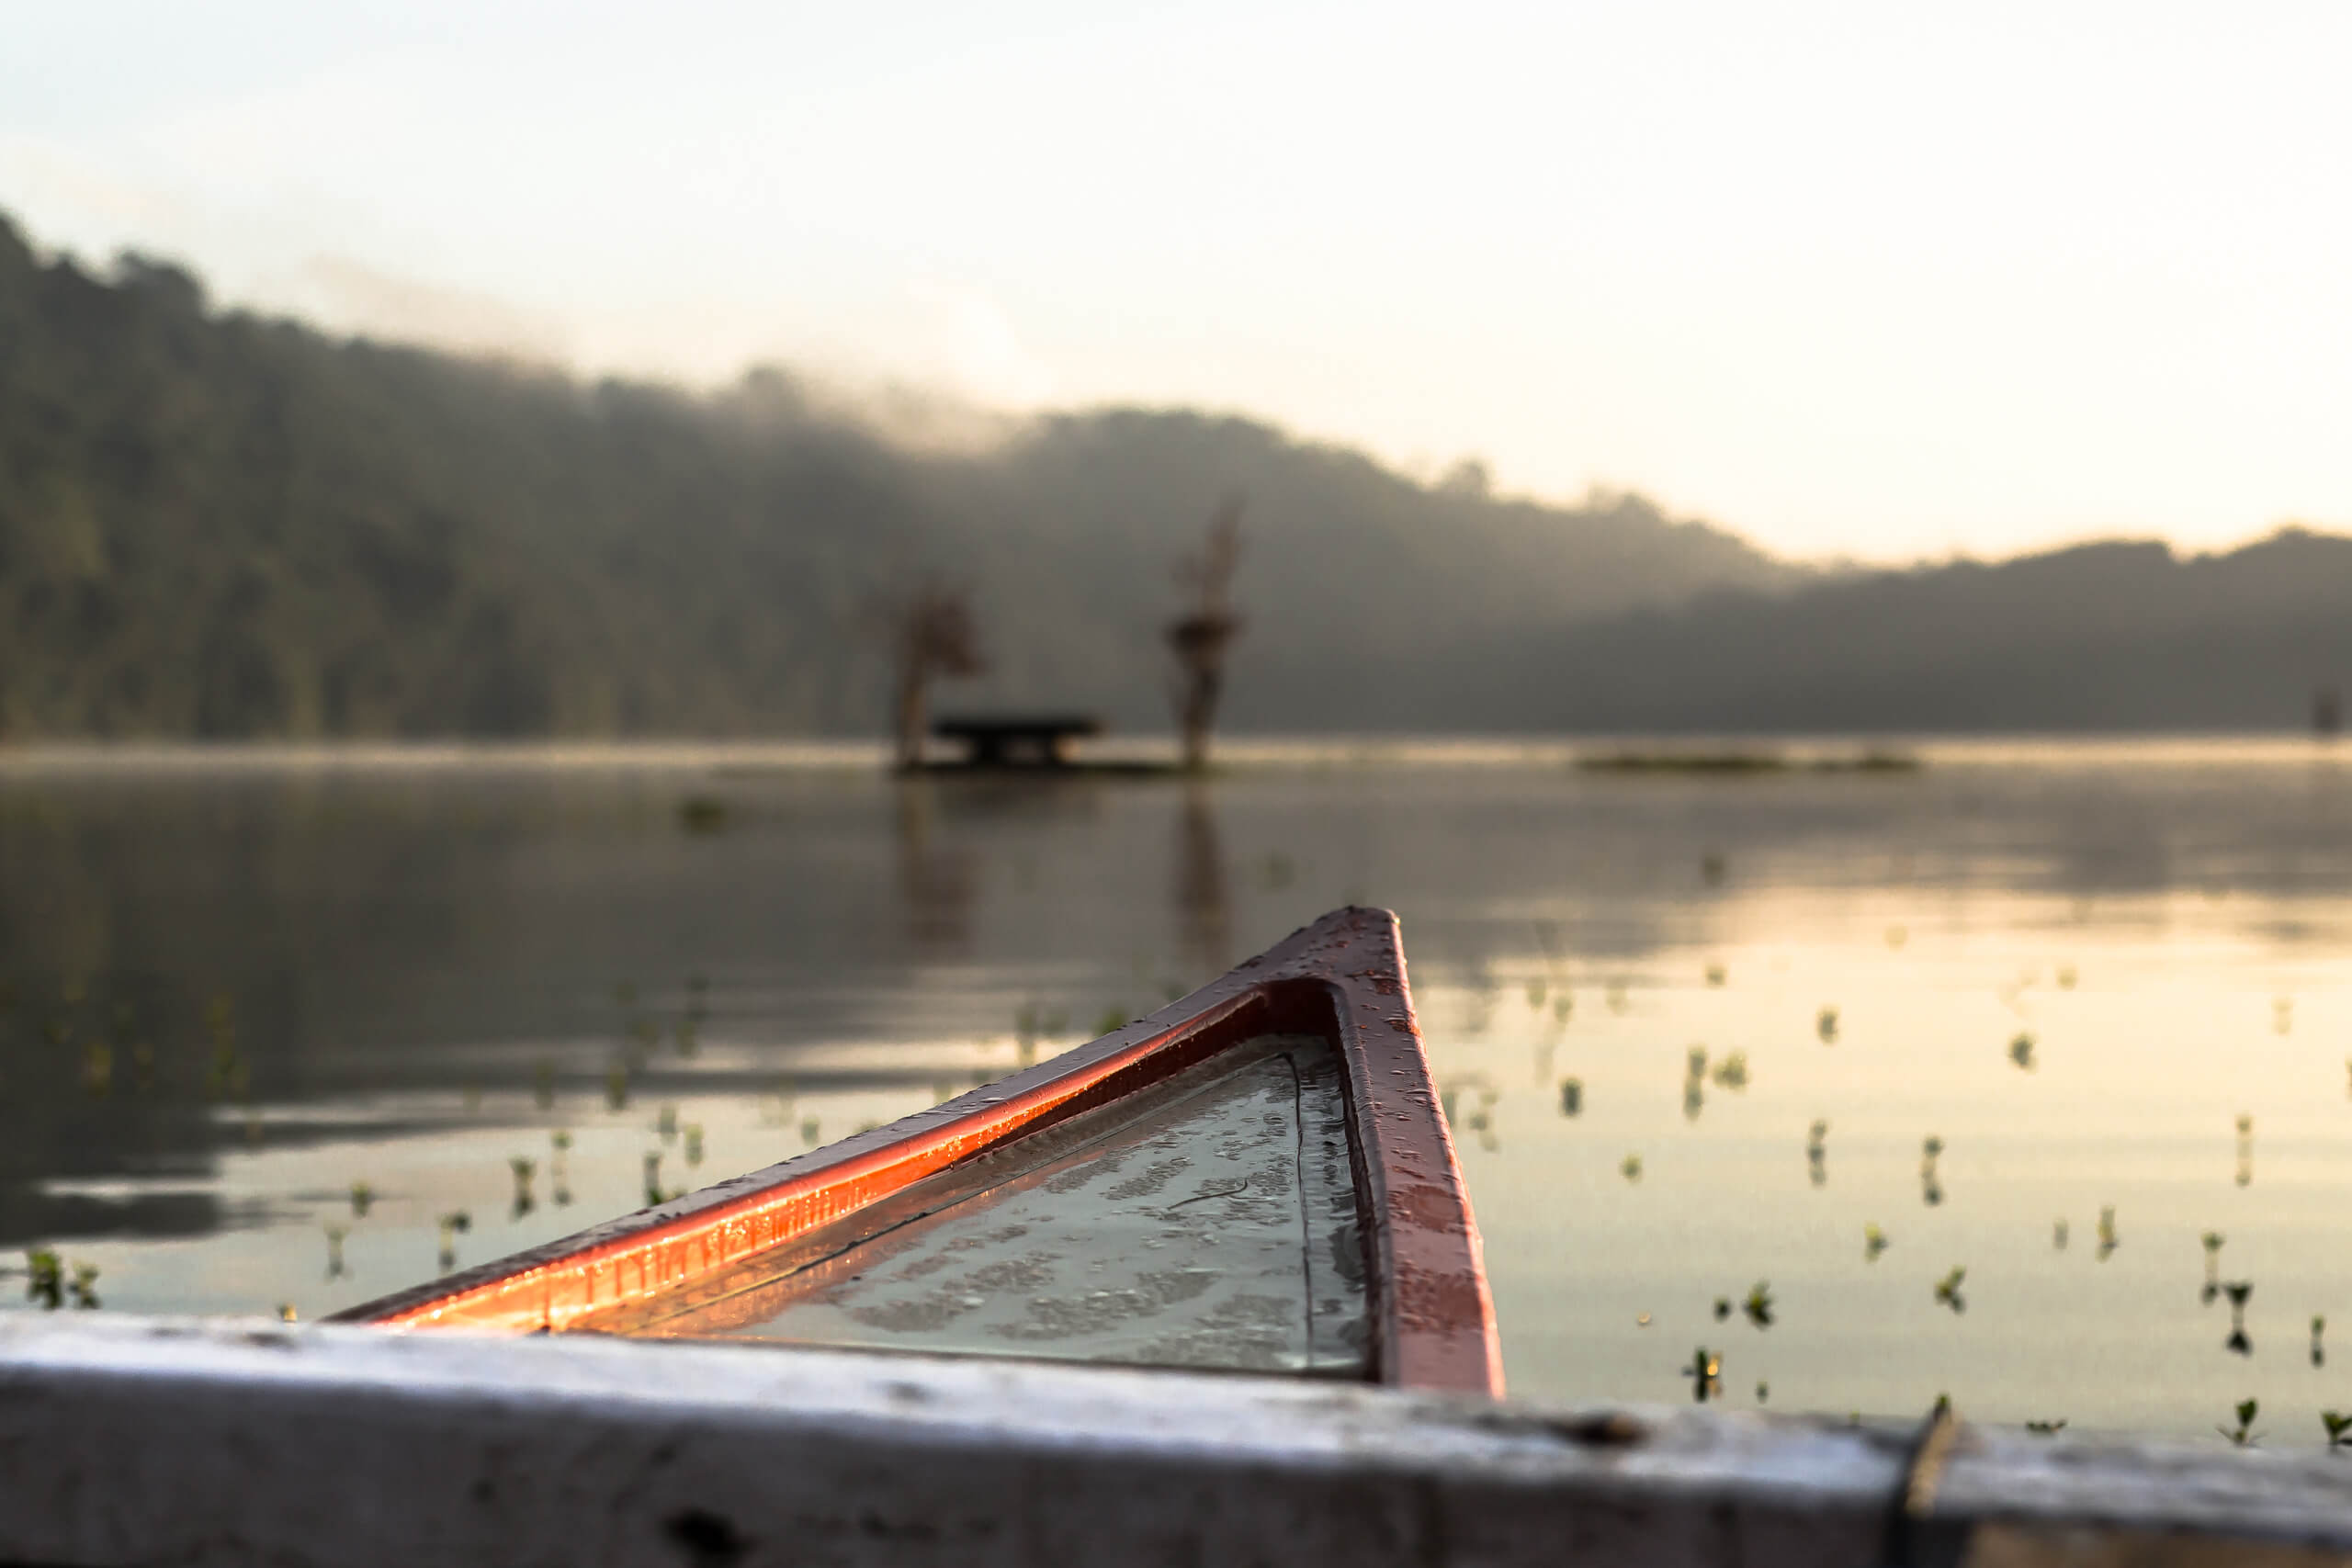 TAMBLINGAN LAKE TEMPLE | The leaky canoe was fun until our lovely local captain told us how deep the lake is!